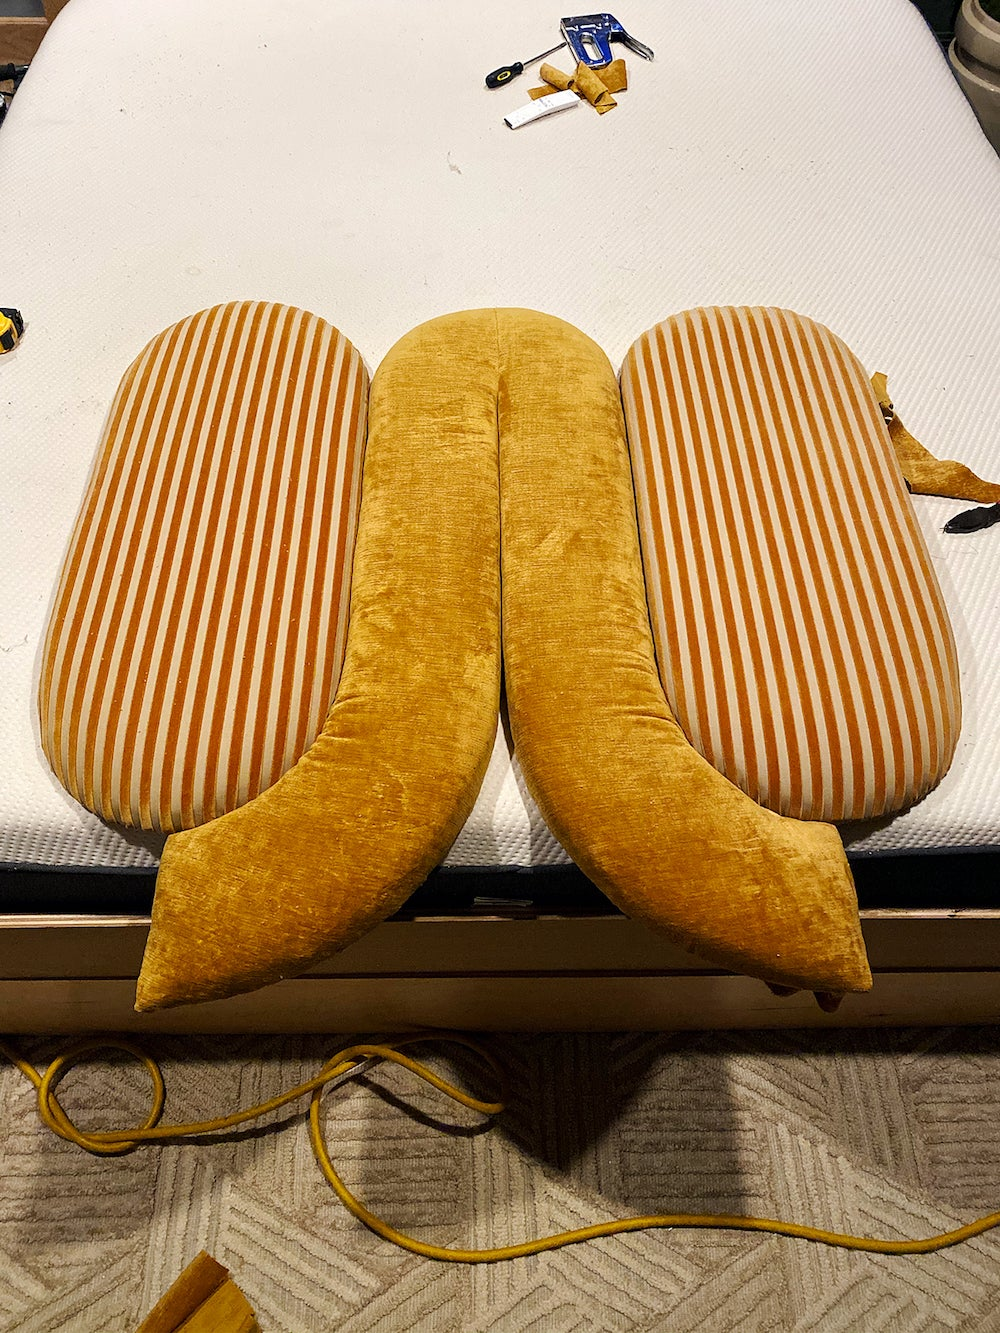 oval boards covered in ochre fabric